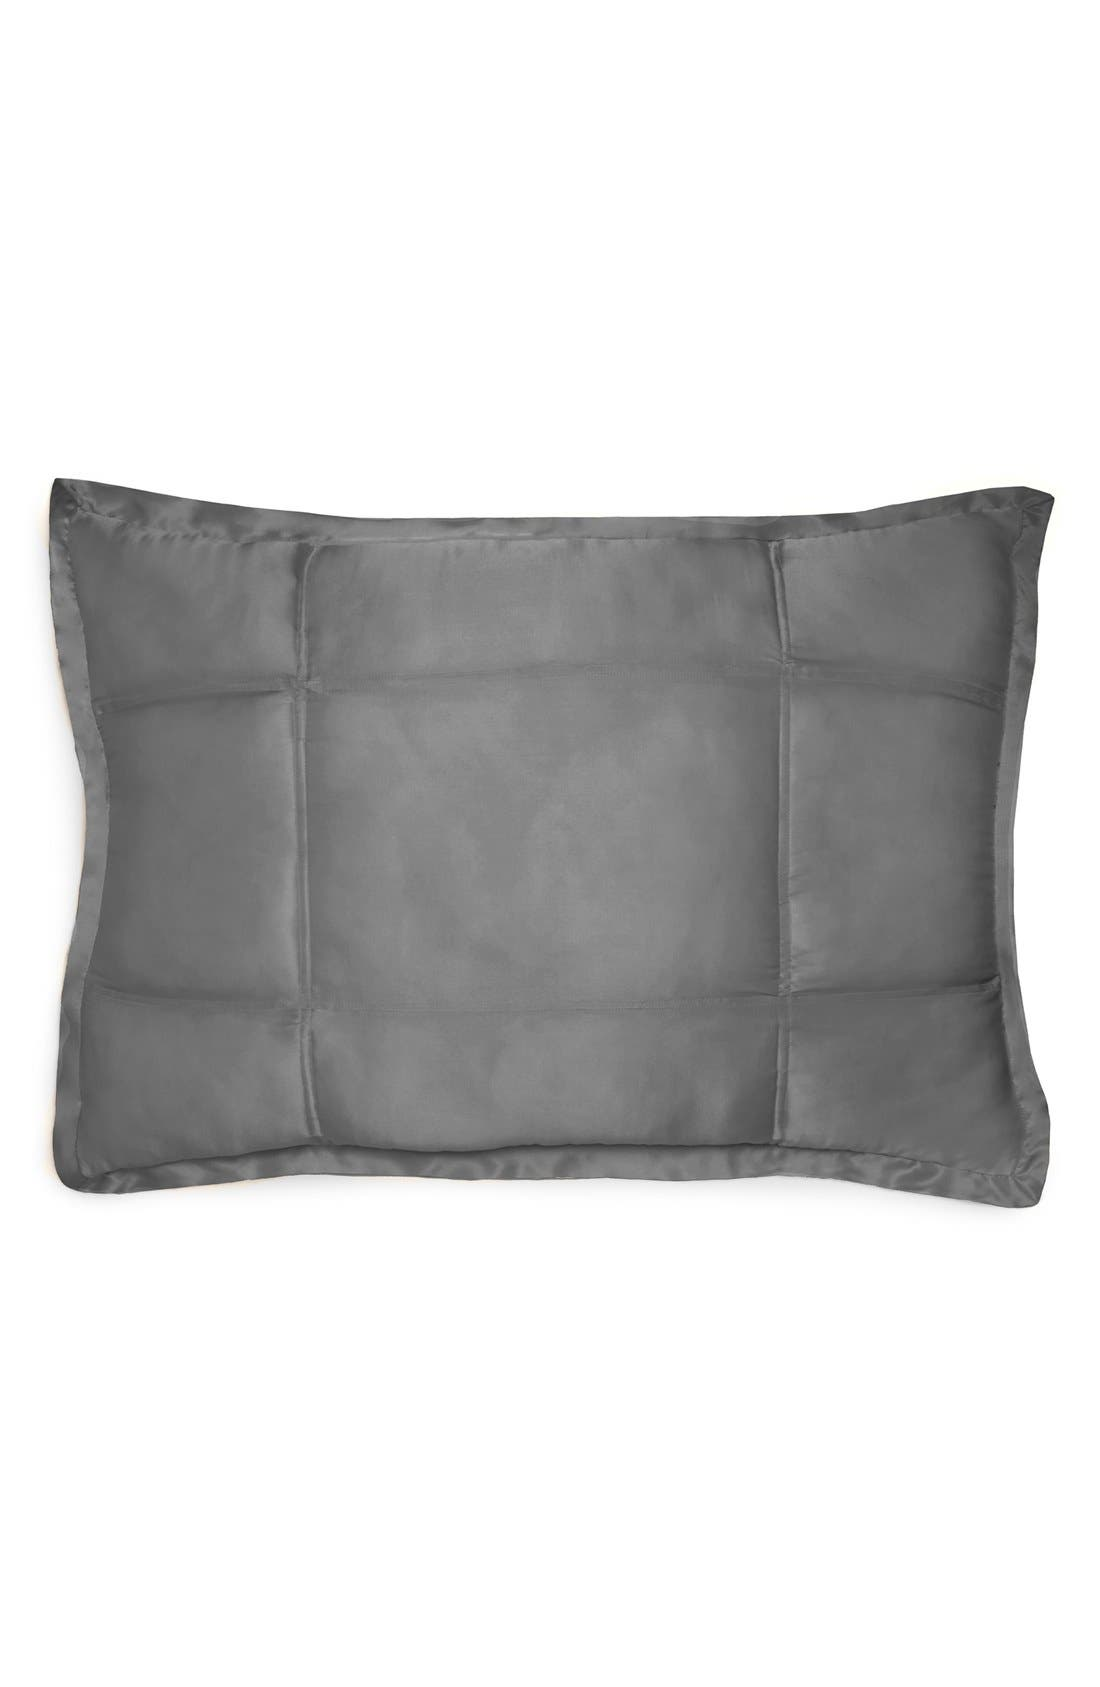 donna karan collection silk charmeuse quilted pillow sham